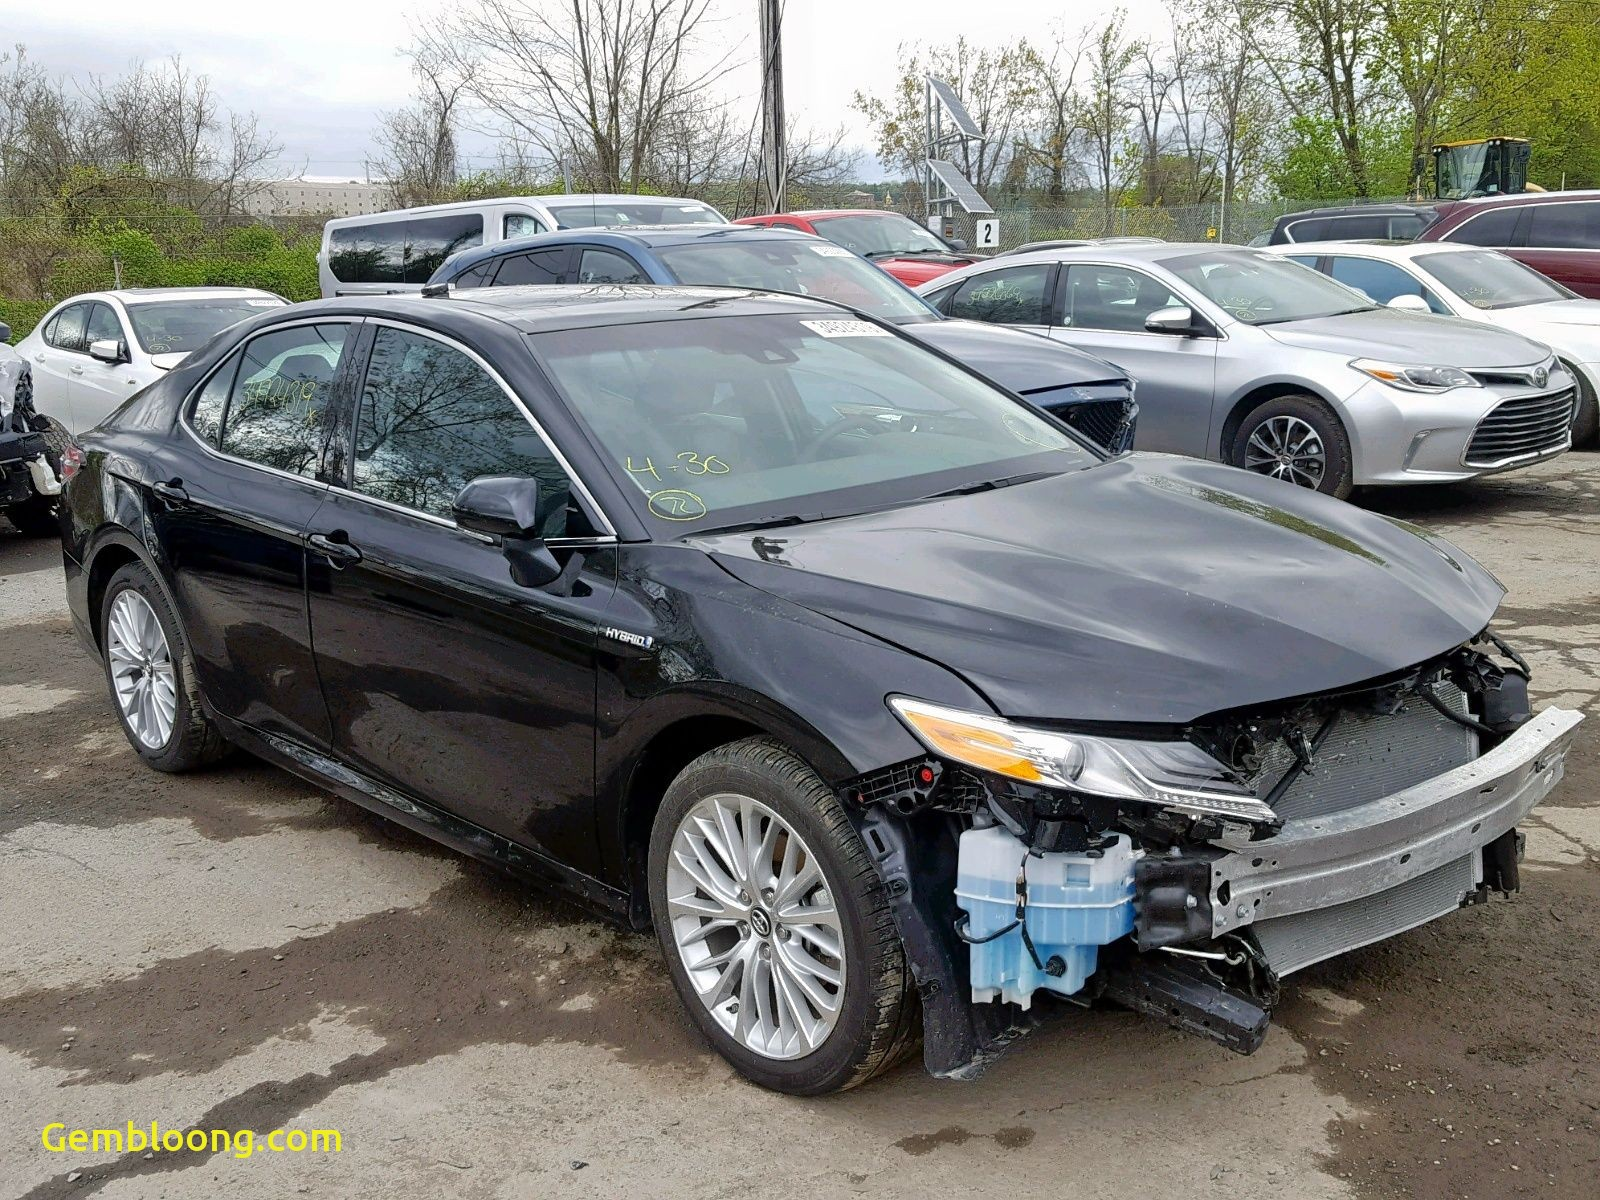 2018 Cadillac Xts Lovely 2018 toyota Camry Hybrid Salvage Car Auctions